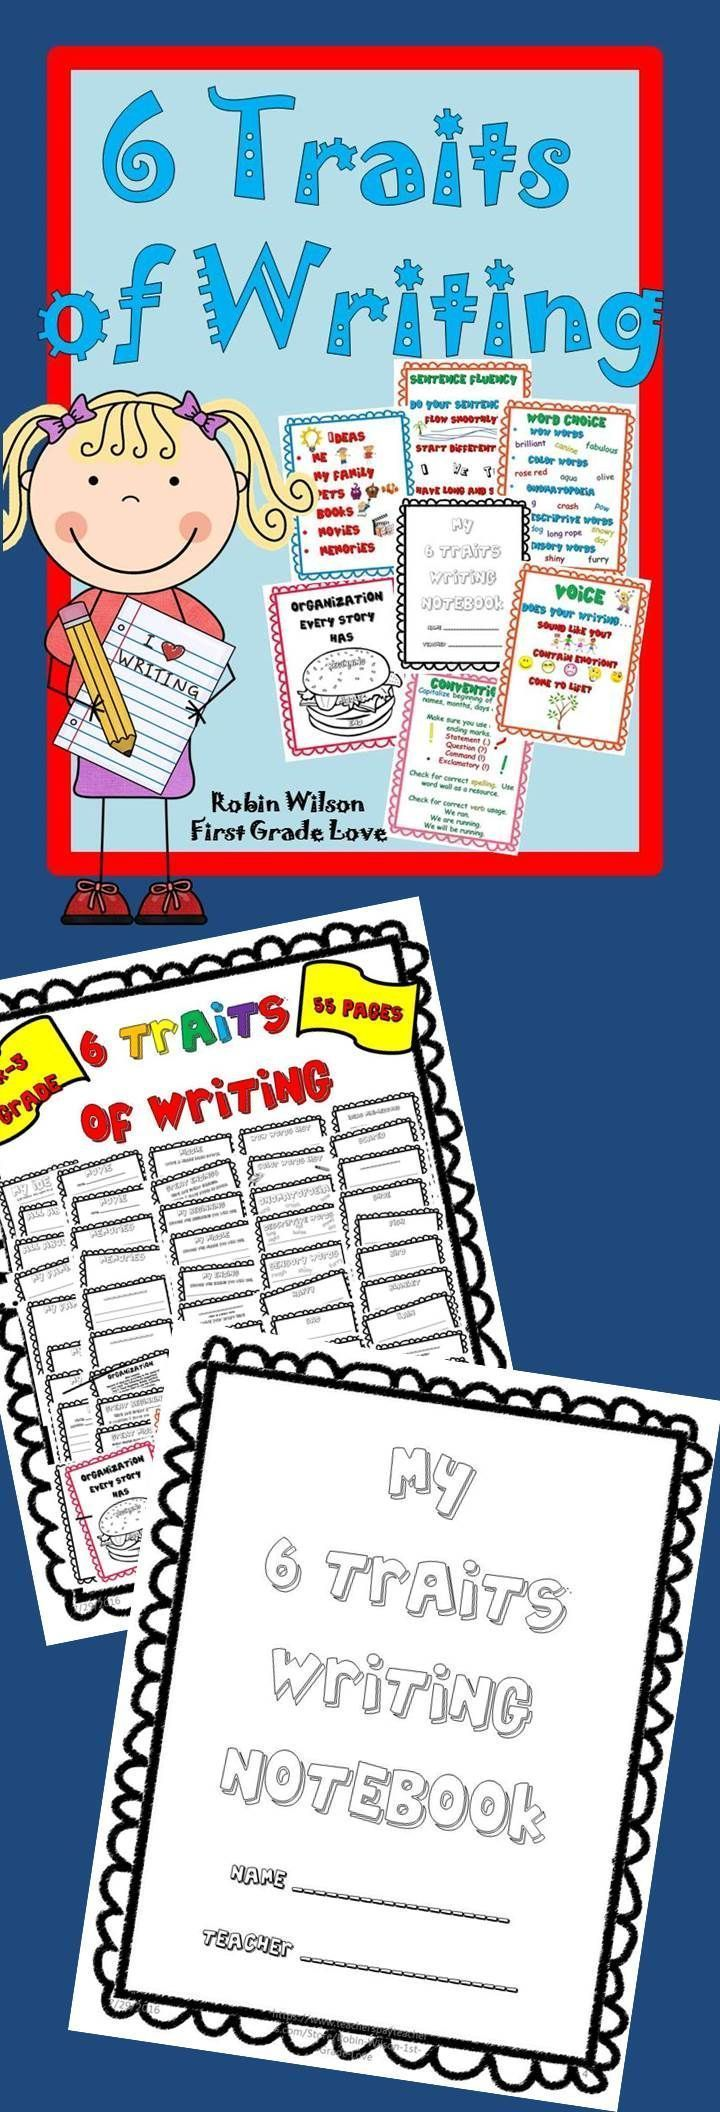 delivering lessons for all students essay Lesson plans, classroom resources 25 great essay topics for students it has been purpose built to deliver through platforms such as google classroom.